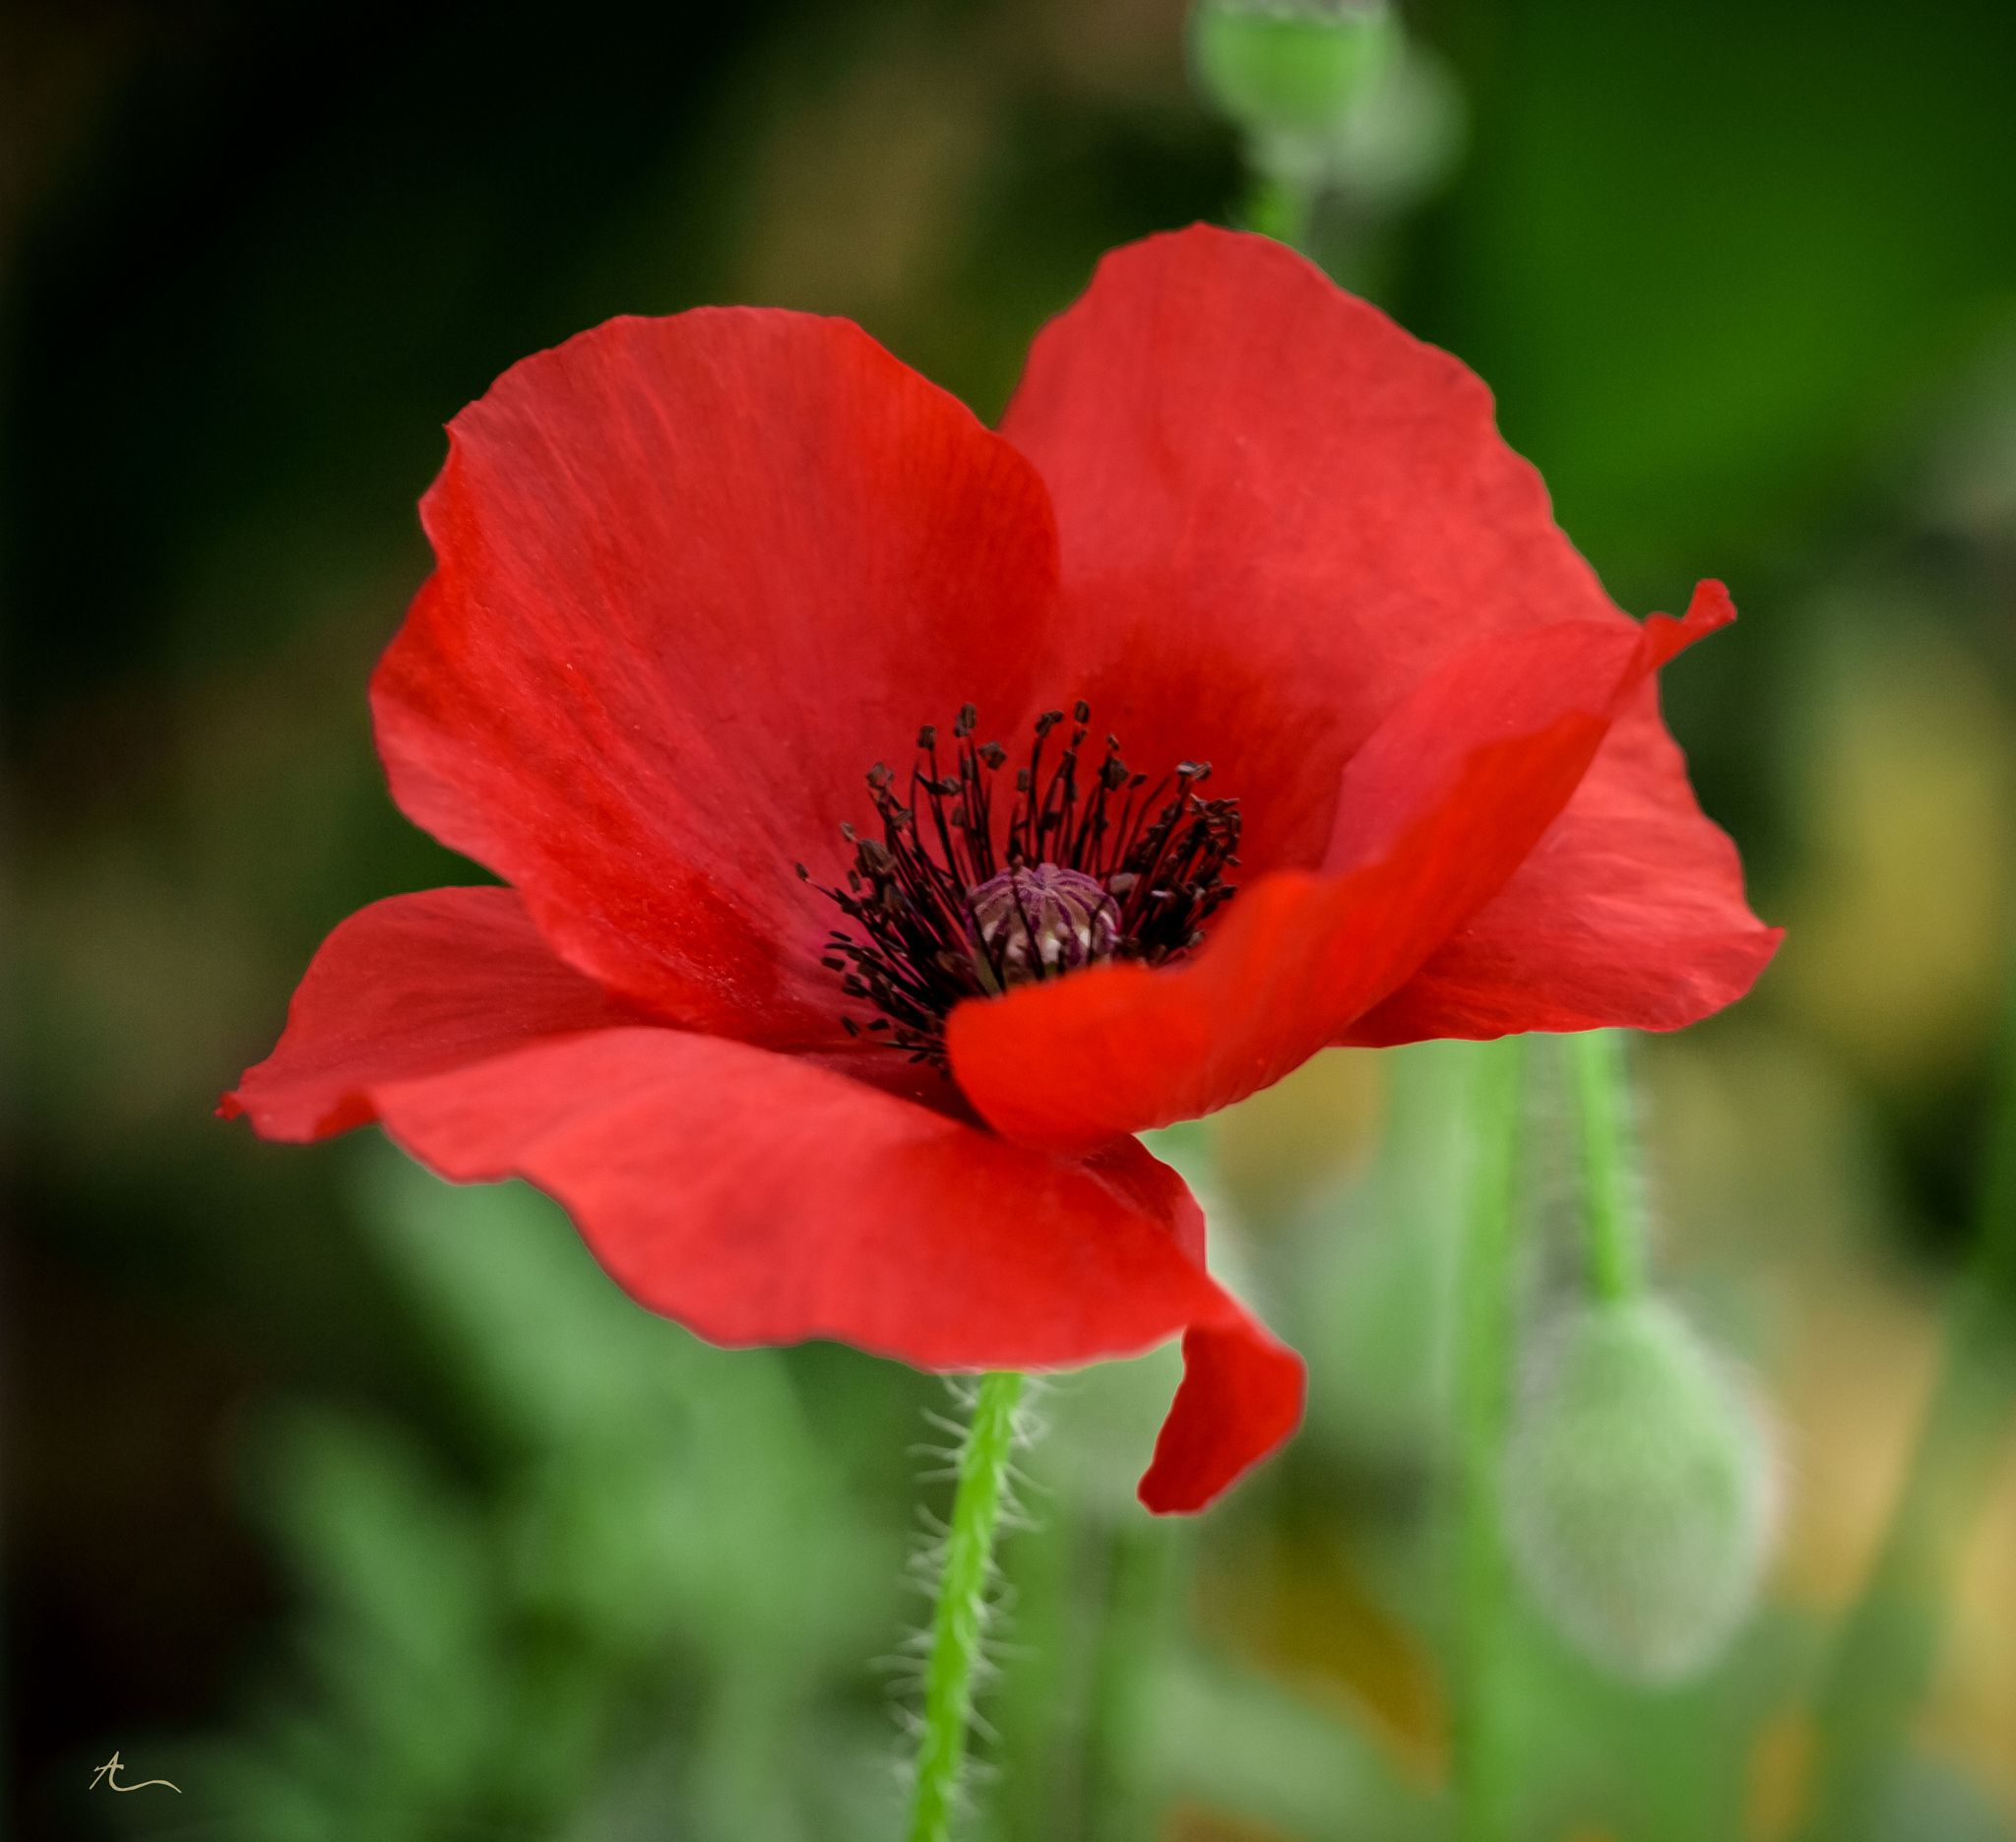 Free Photo Red Poppy Flower Red Summer Poppy Free Download